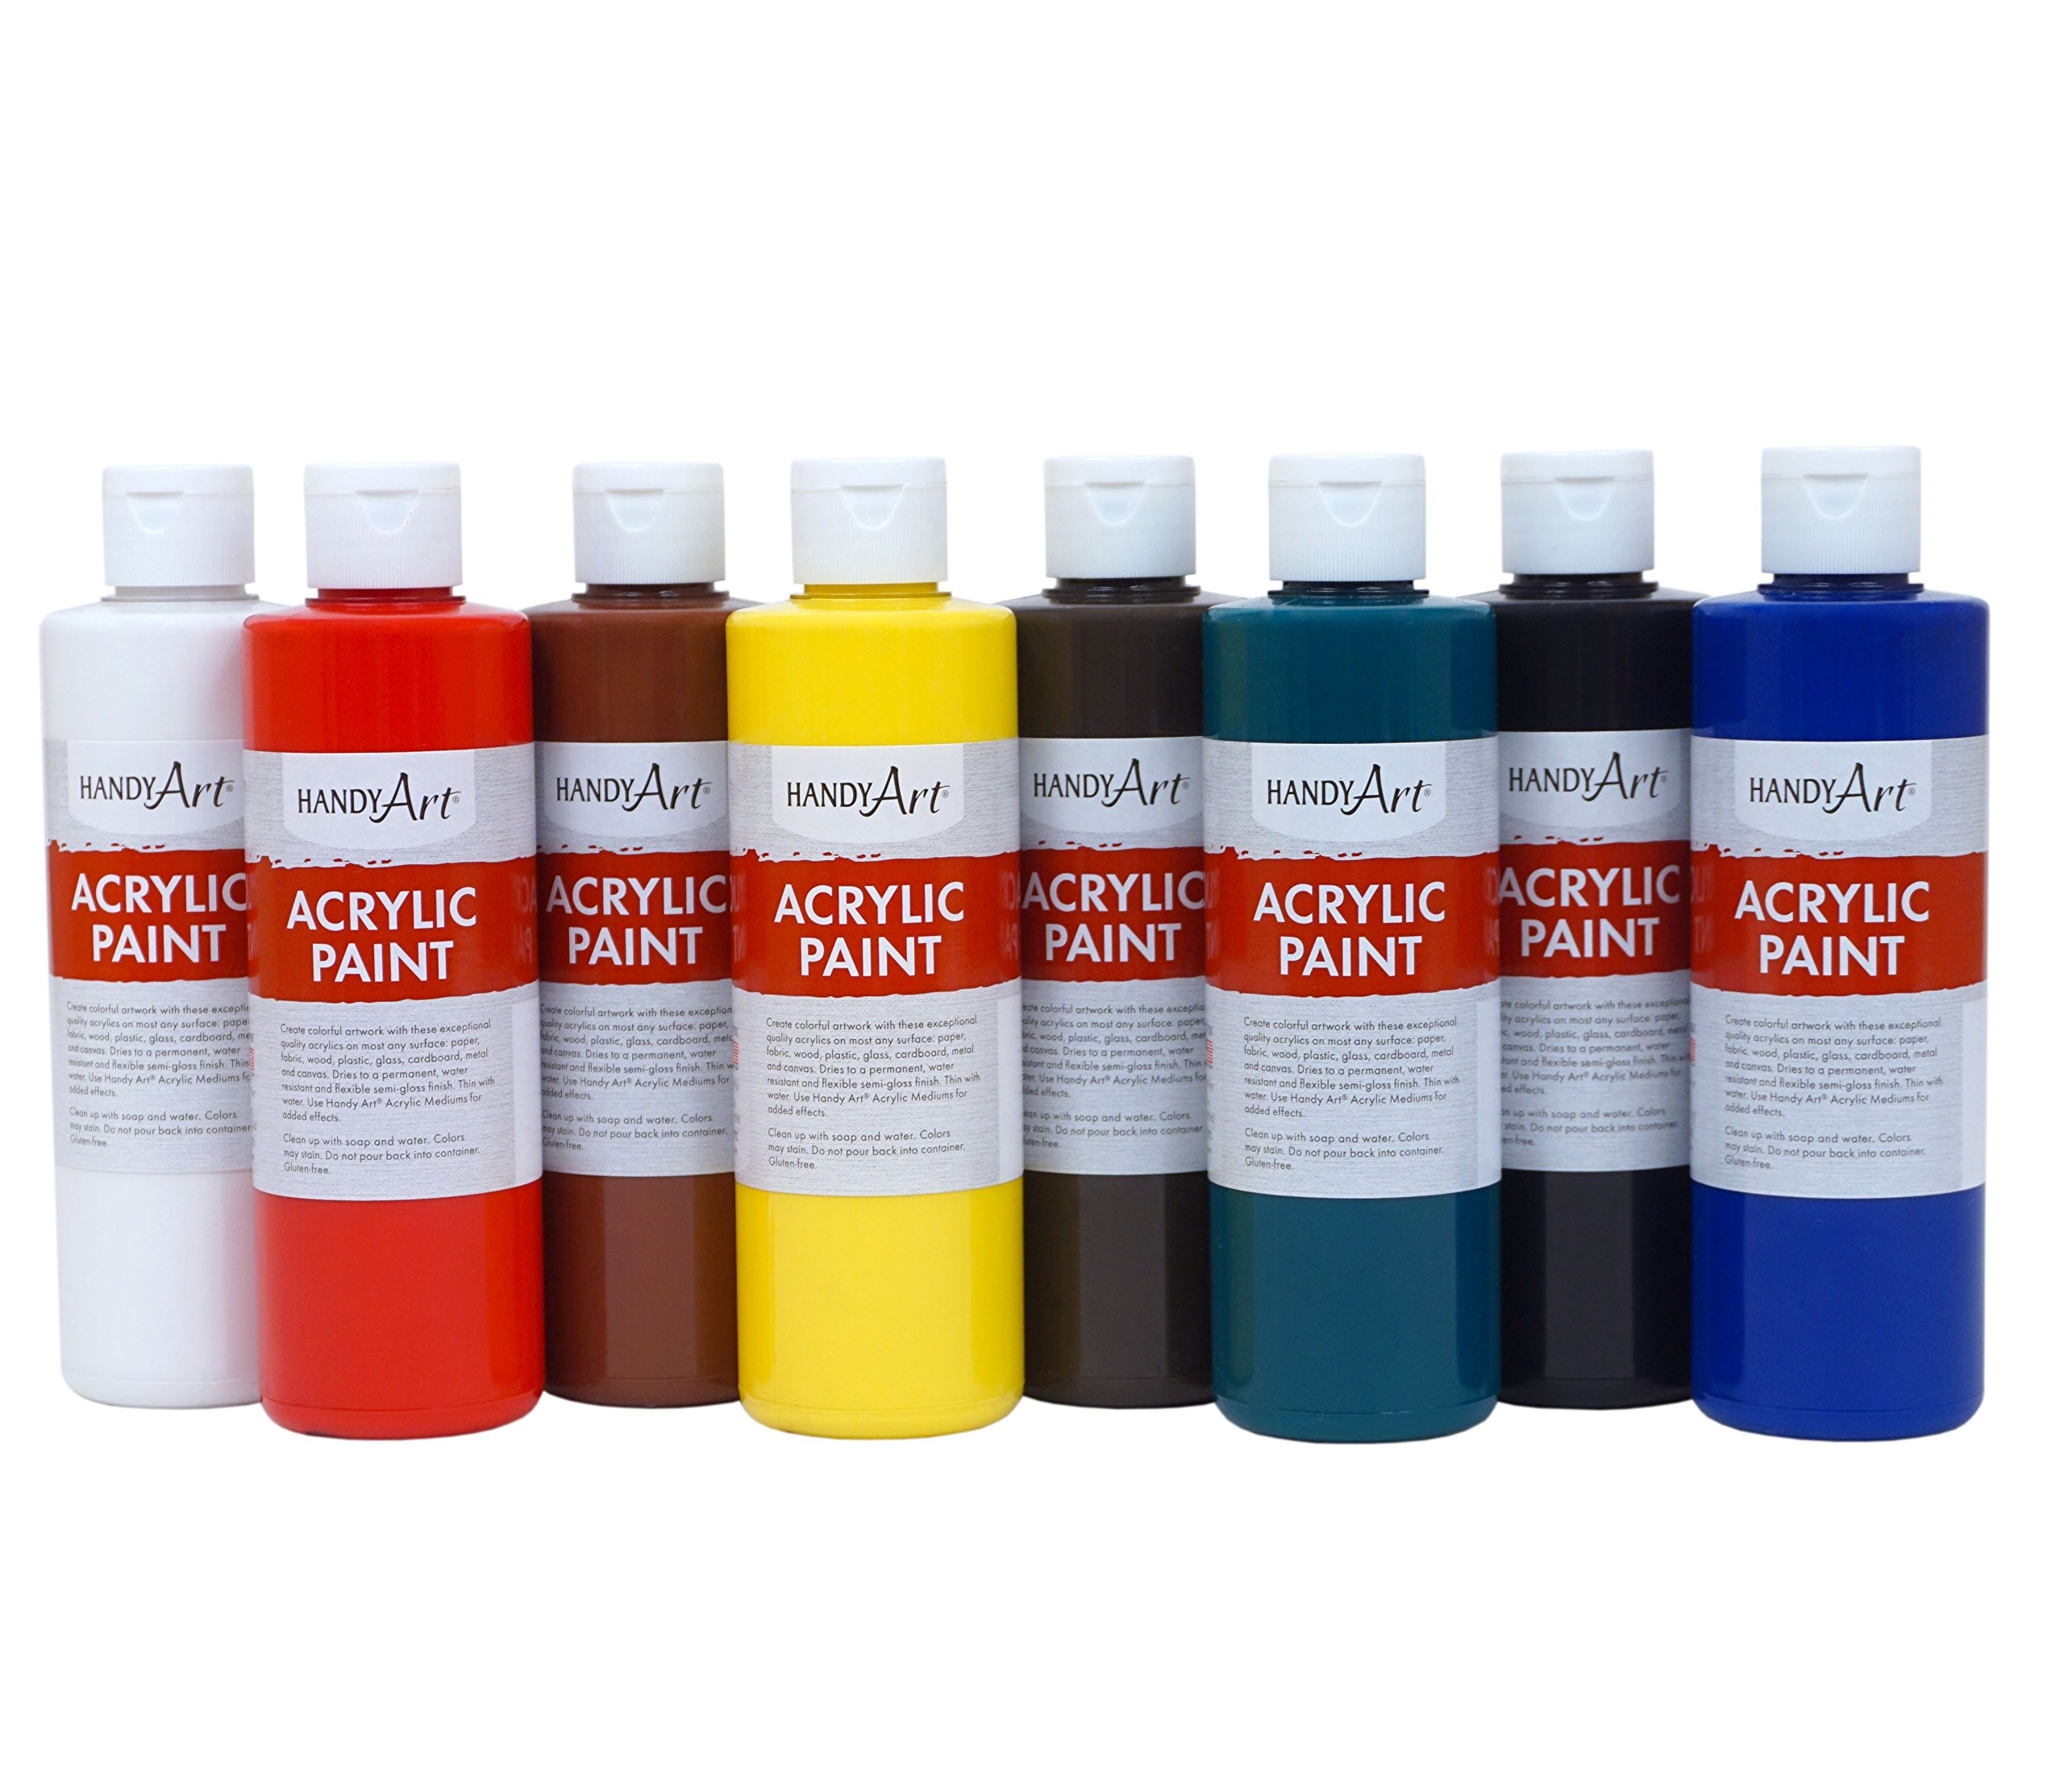 Handy Art 8 Color - 8 Ounce Primary Acrylic Paint Set, Assorted by Handy Art